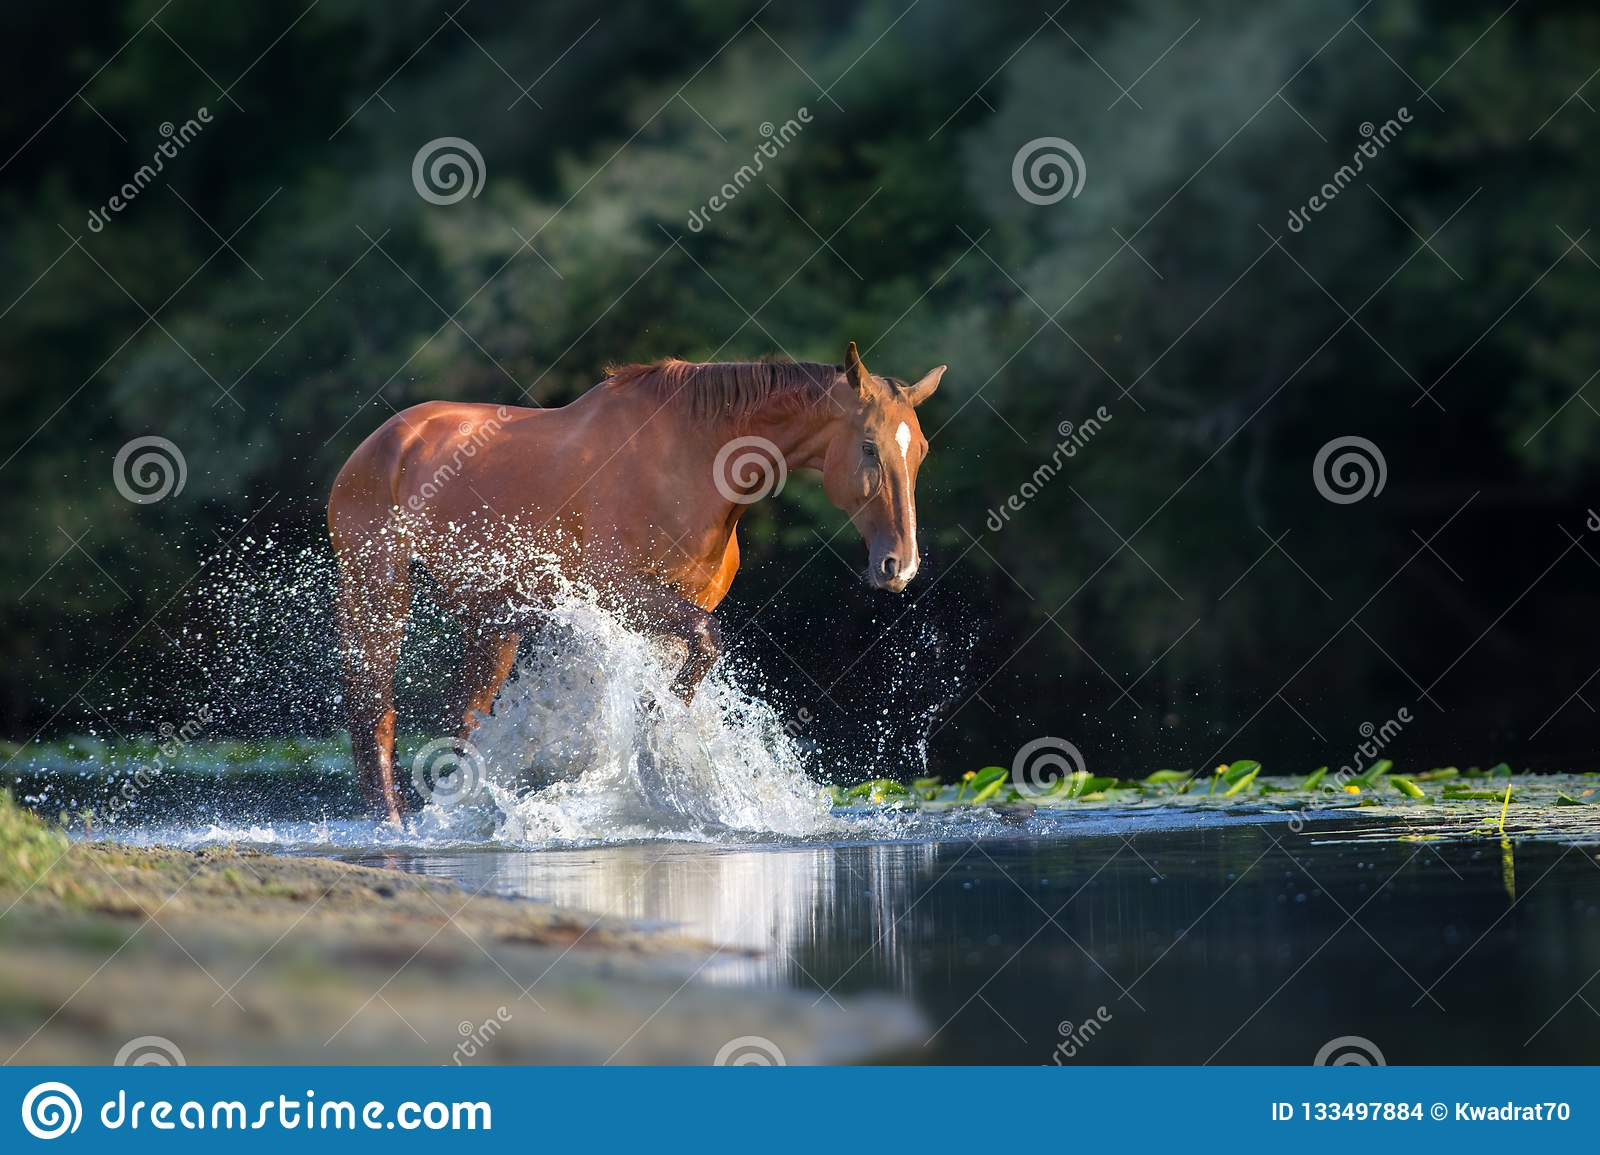 Chestnut horse in river